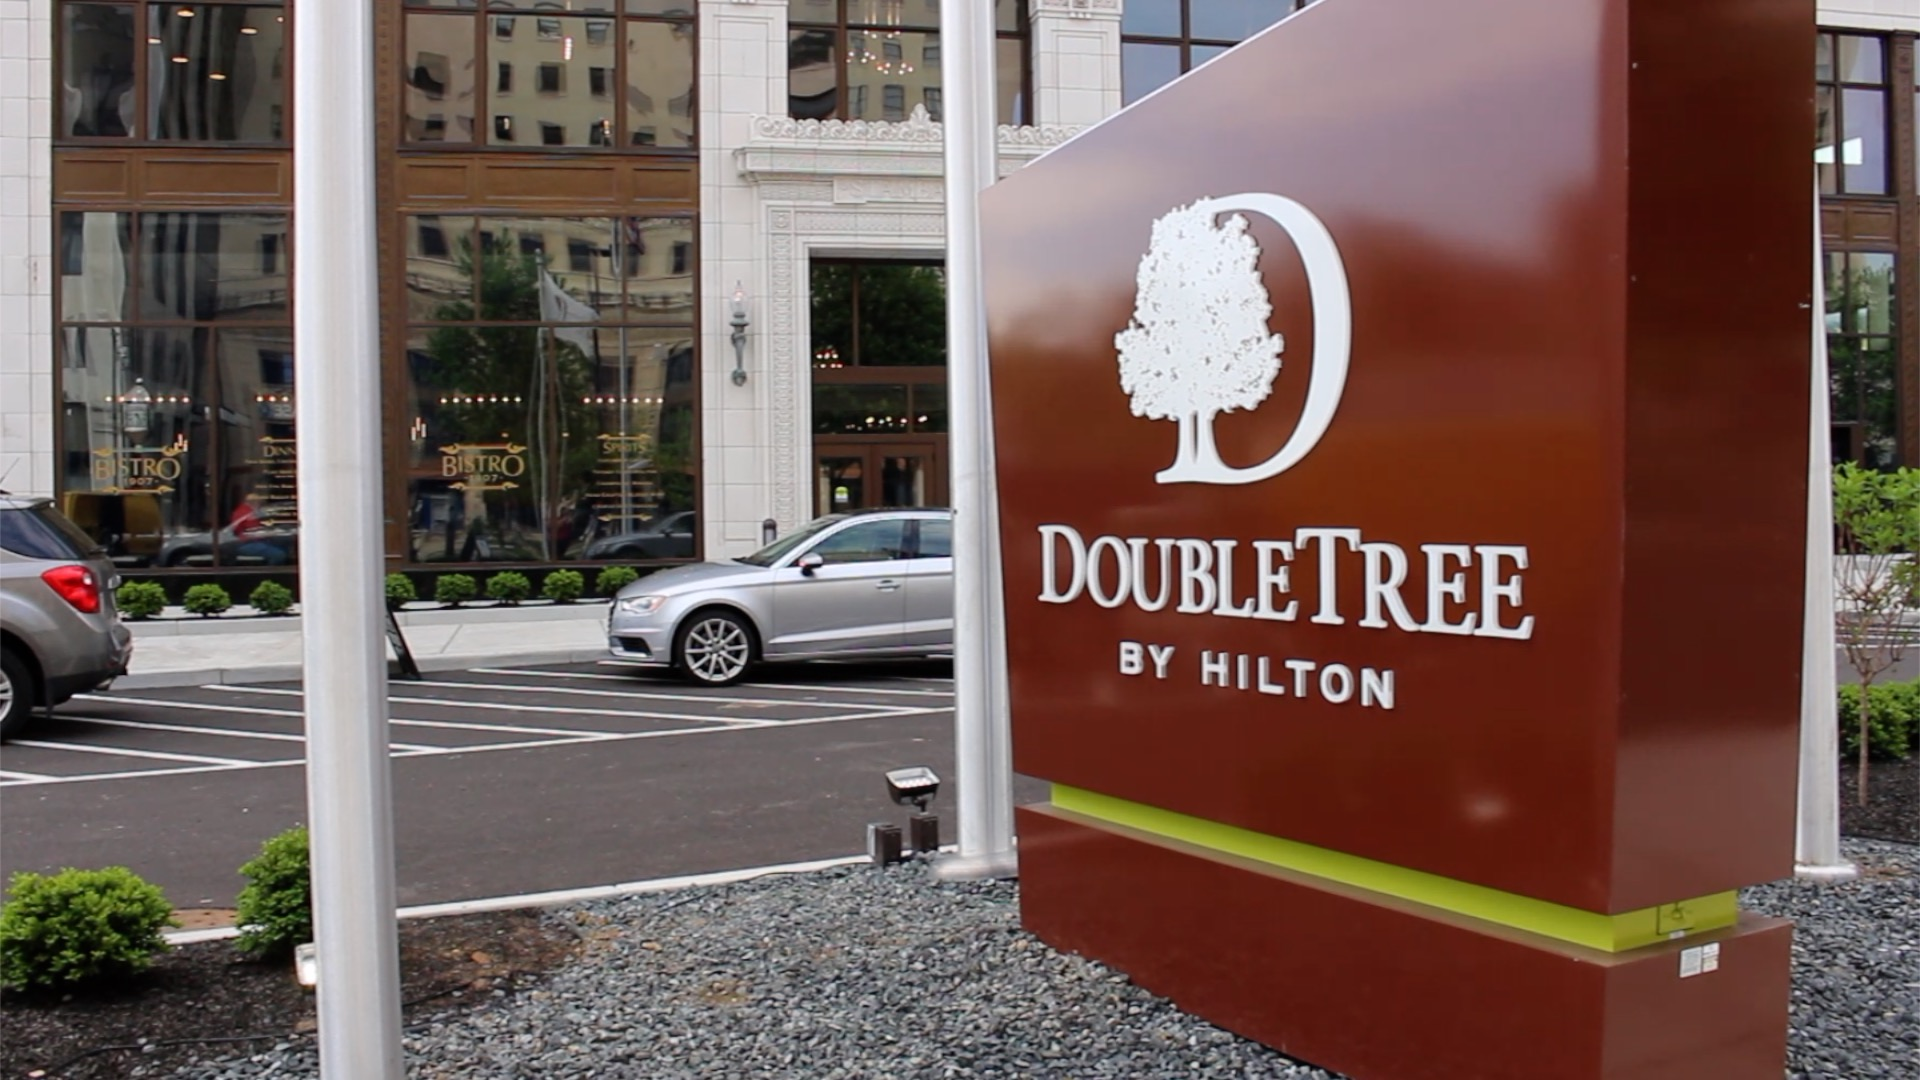 DoubleTree by Hilton Youngstown